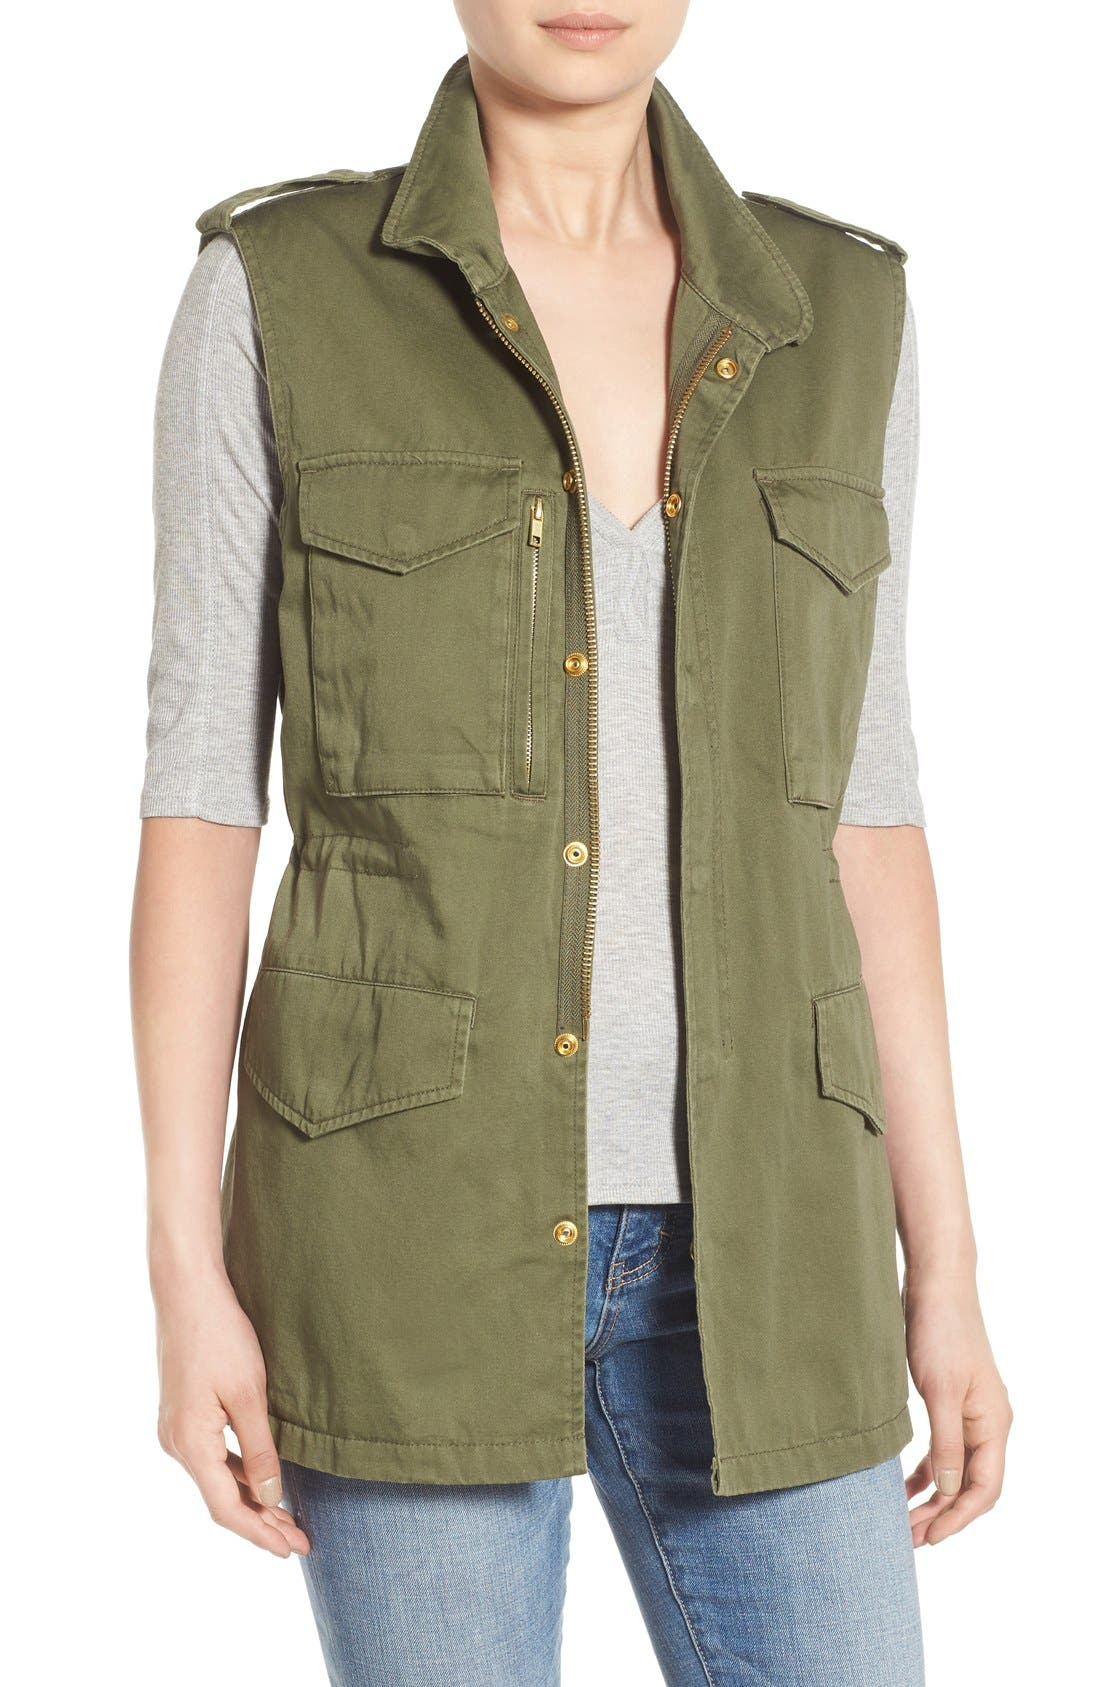 Alternate Image 1 Selected - Thread & Supply Utility Vest